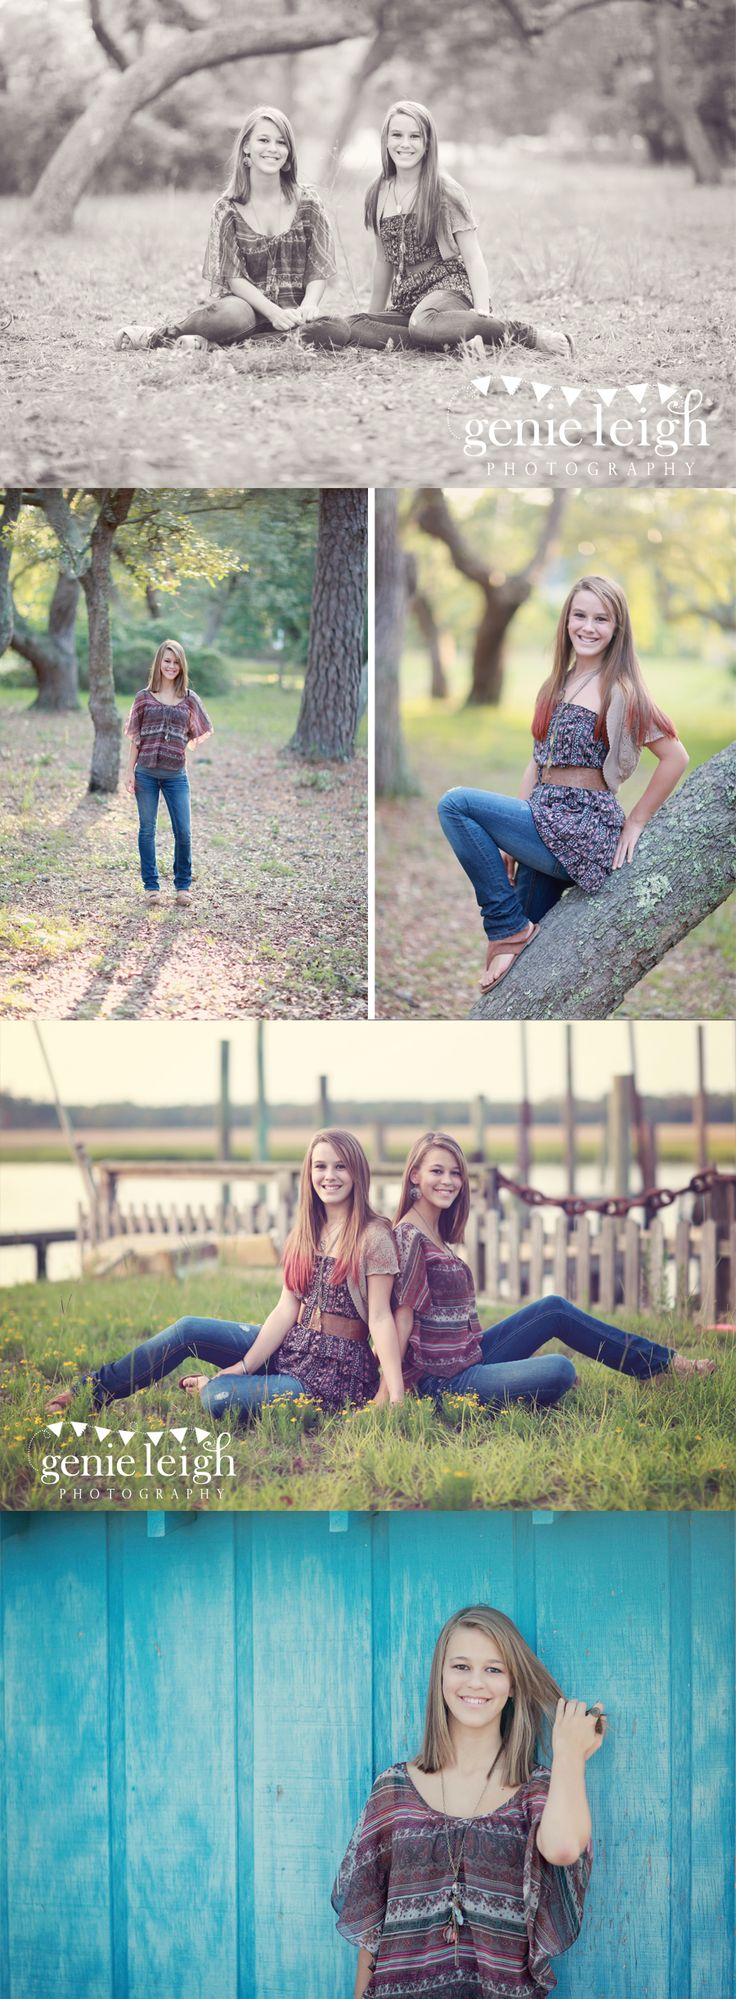 Summer & Lily - Teen photo shoot ideas » Genie Leigh Photography